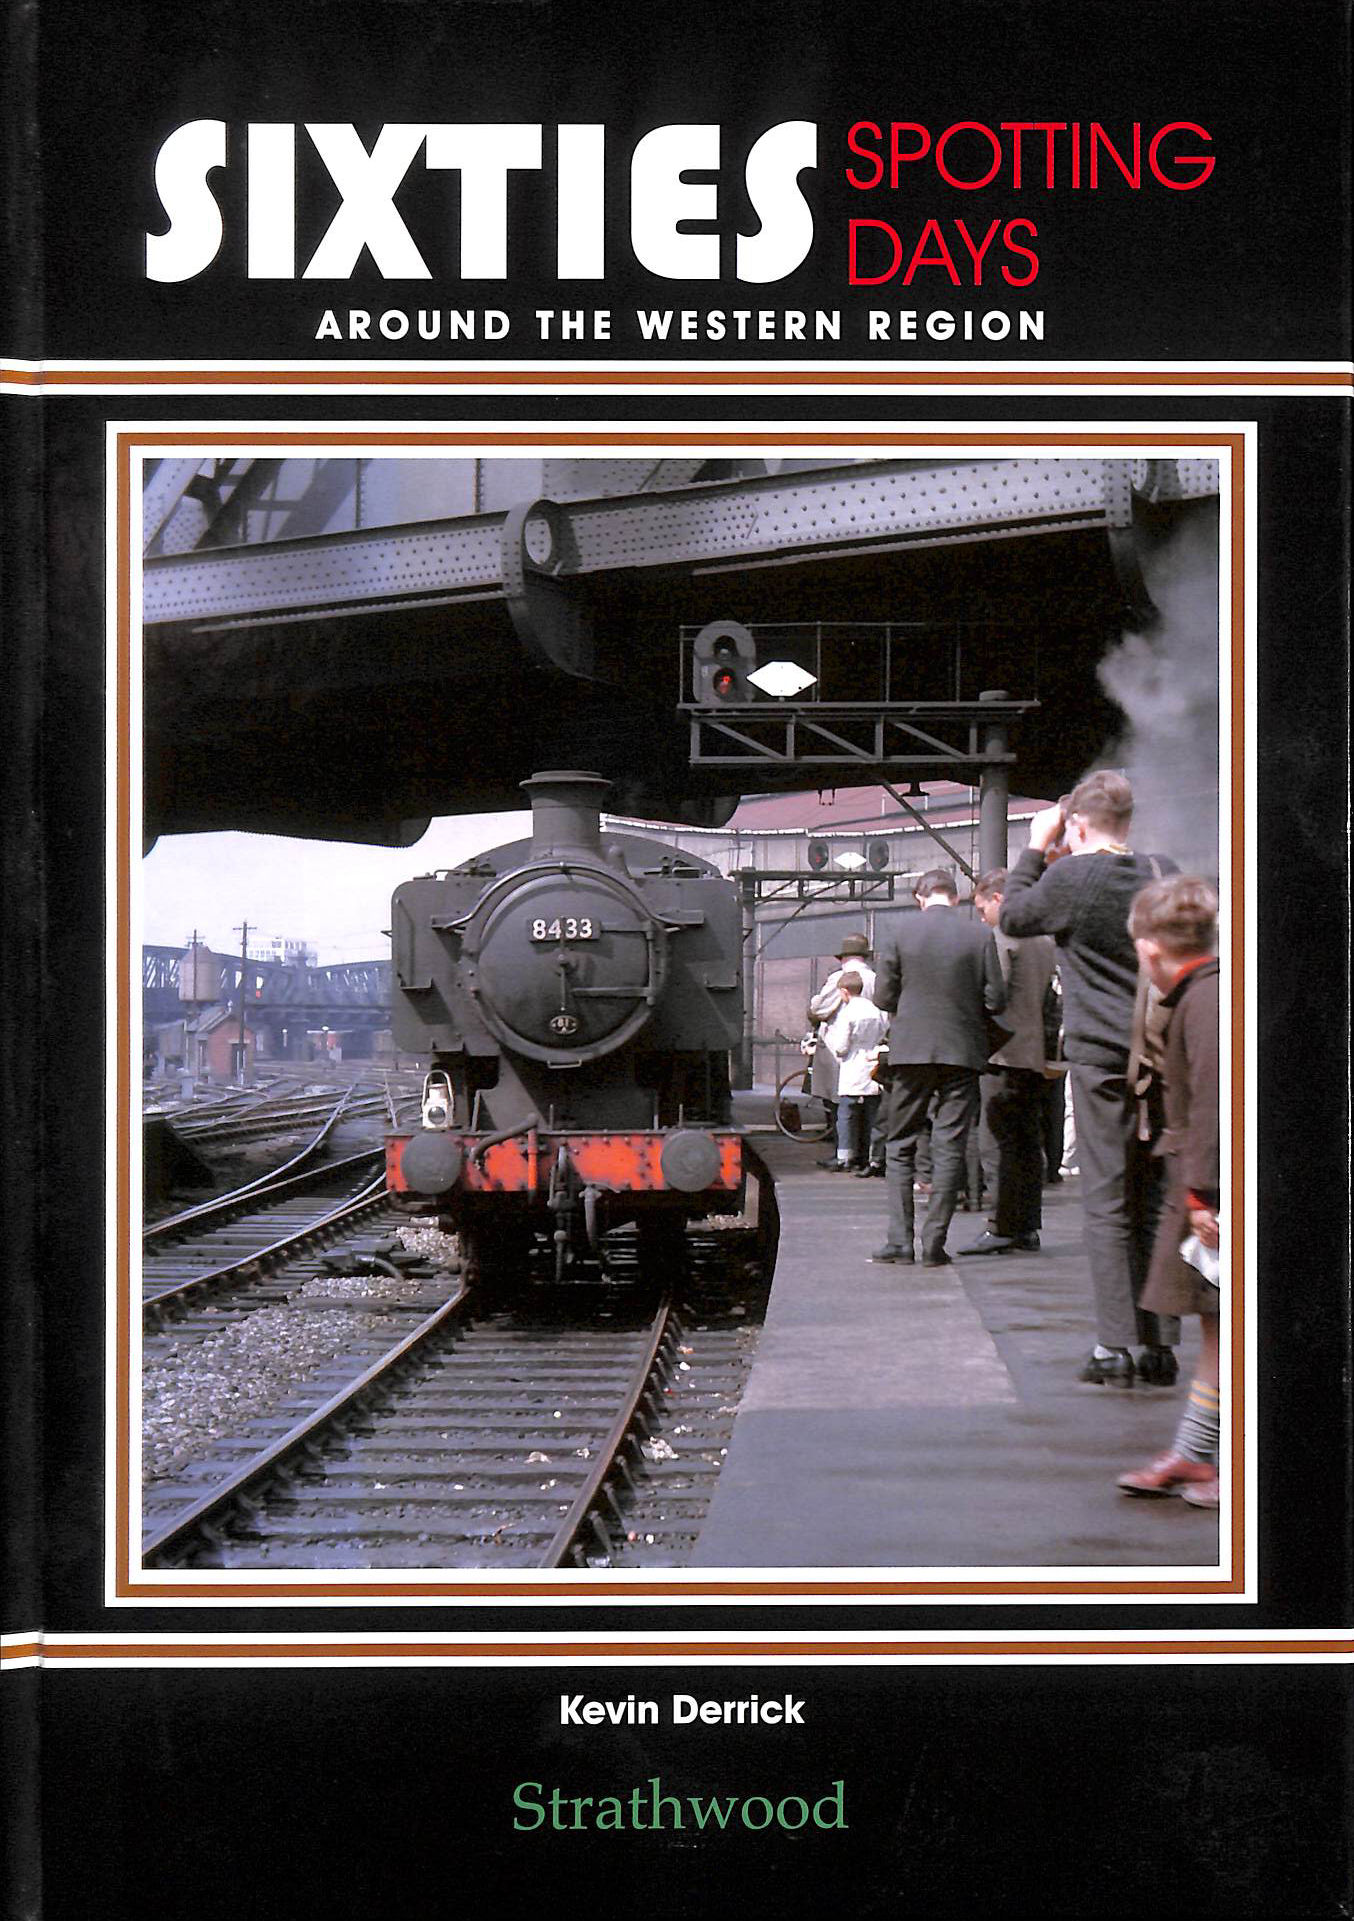 Image for Sixties Spotting Days Around The Western Region